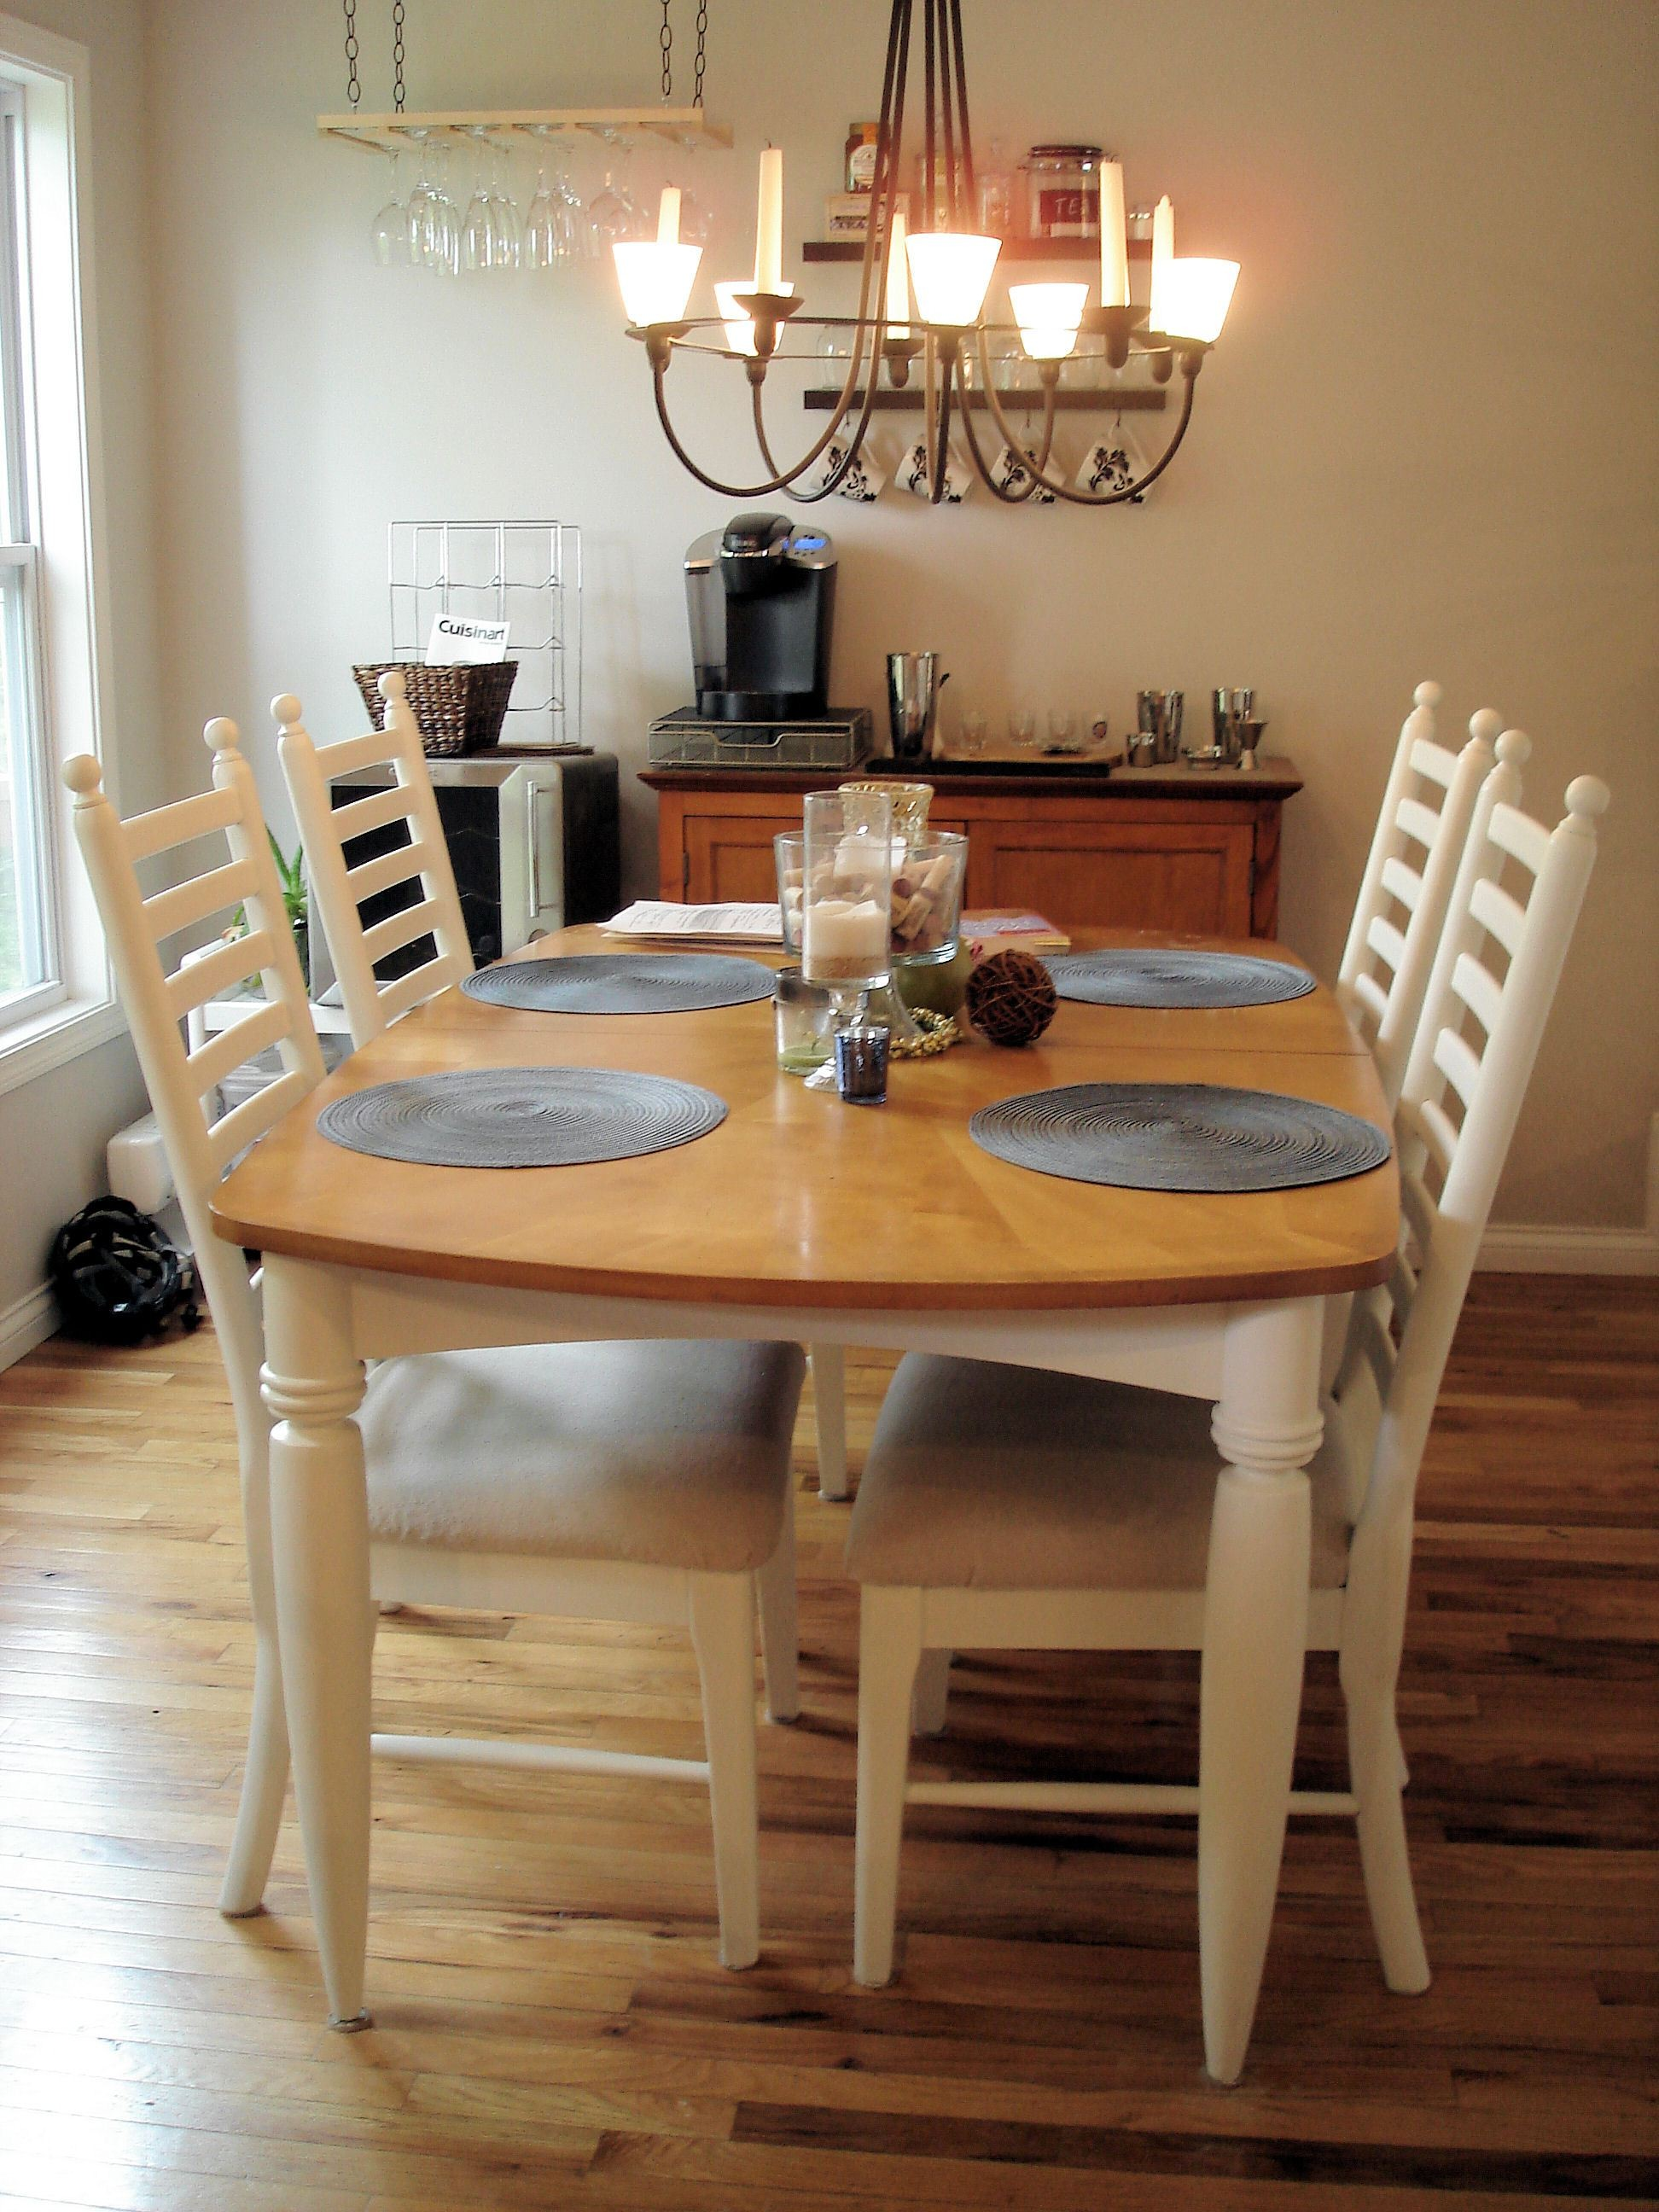 How To Paint A Dining Room Table Without Sanding